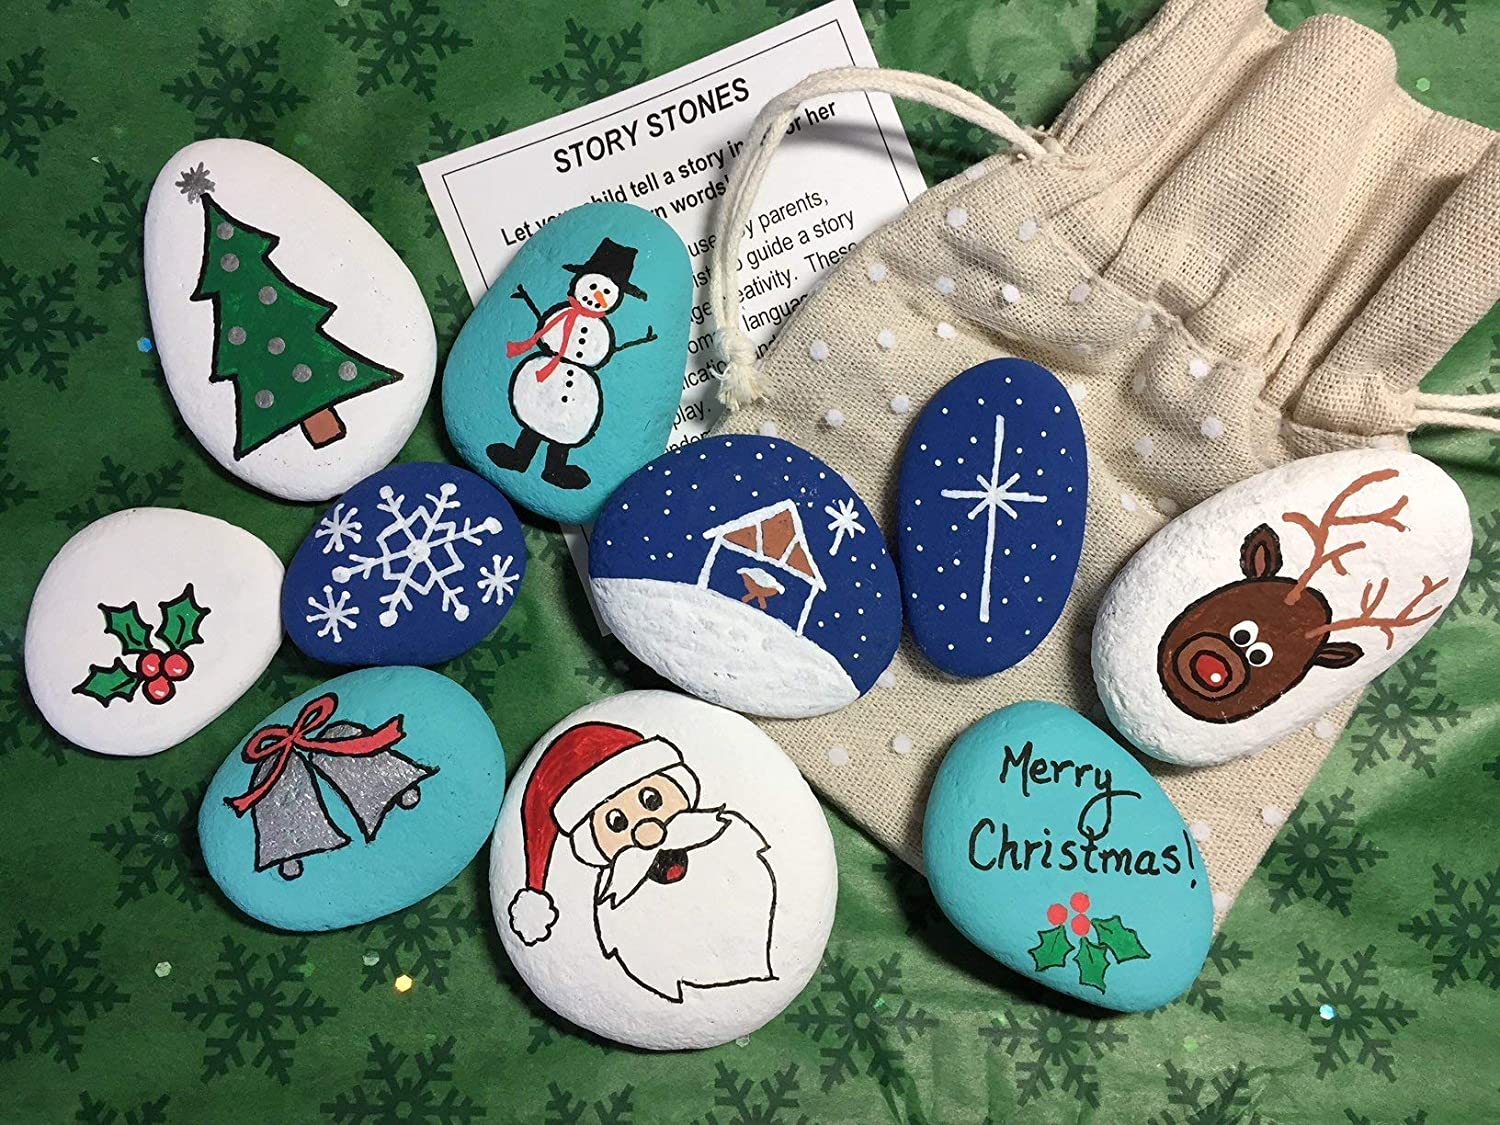 Christmas Song Story Stones